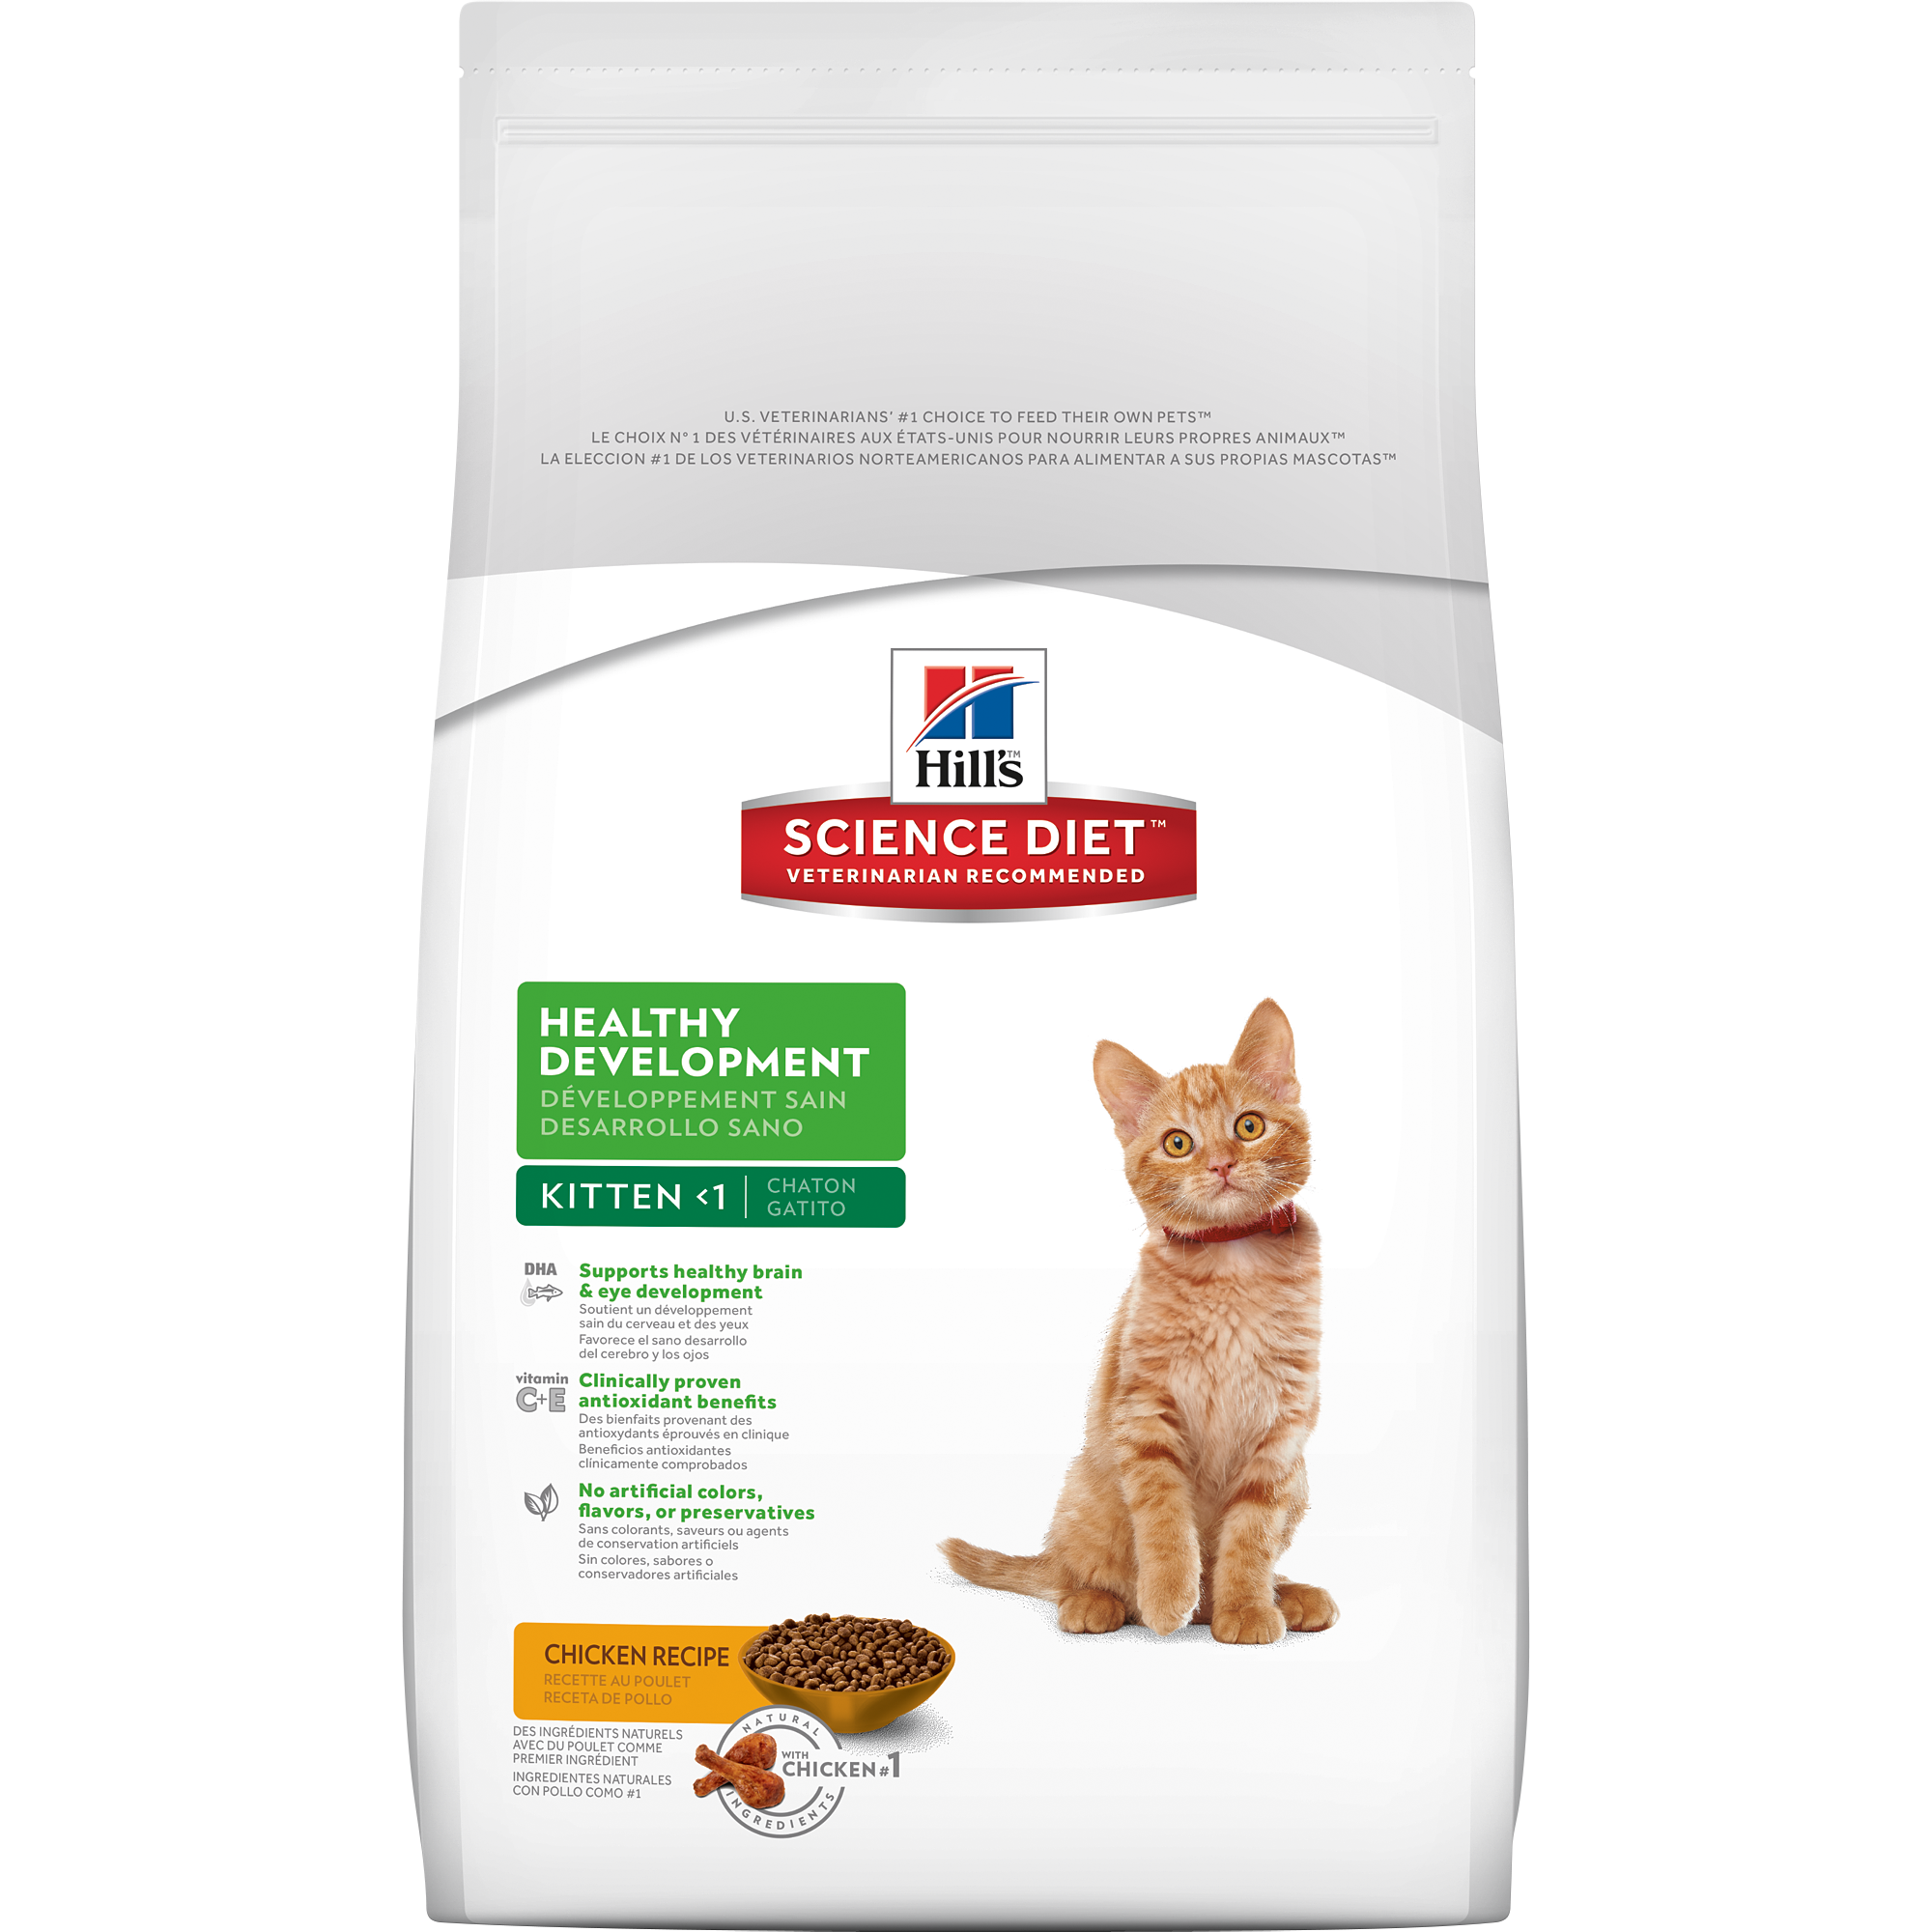 Hill's Science Diet Kitten Healthy Development Chicken Recipe Dry Cat Food, 7 Lb